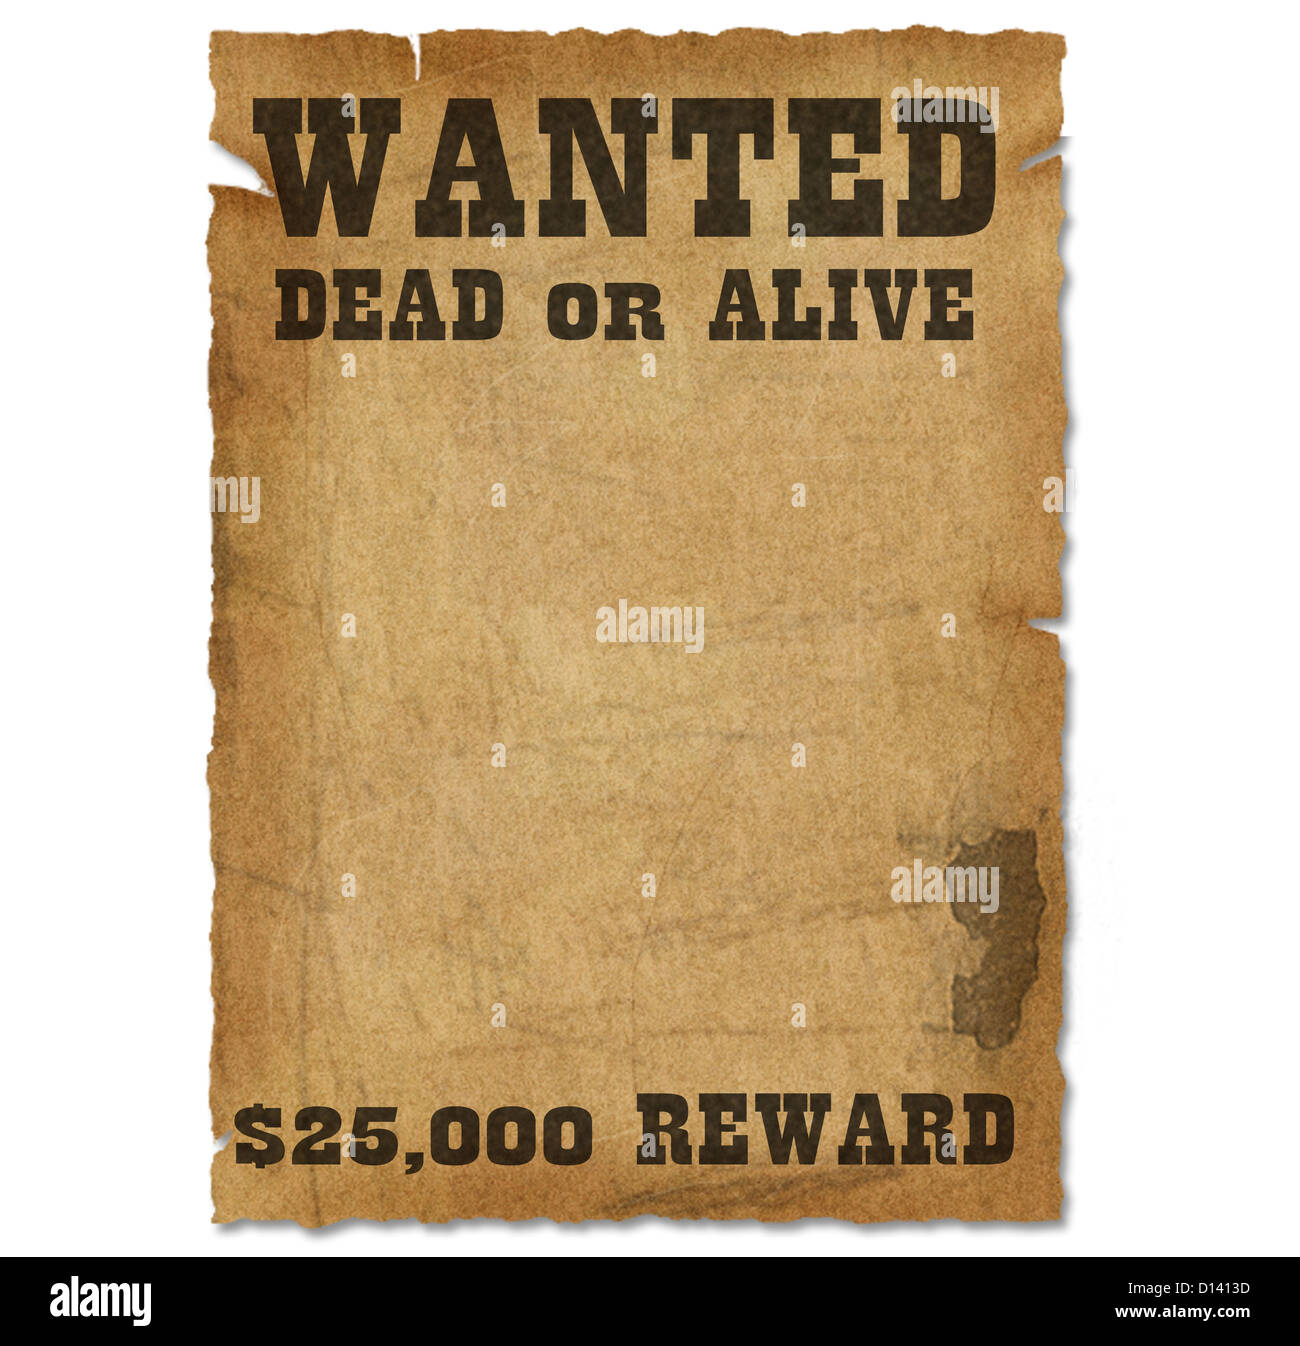 Wanted poster template with bounty reward stock photo for Wanted dead or alive poster template free